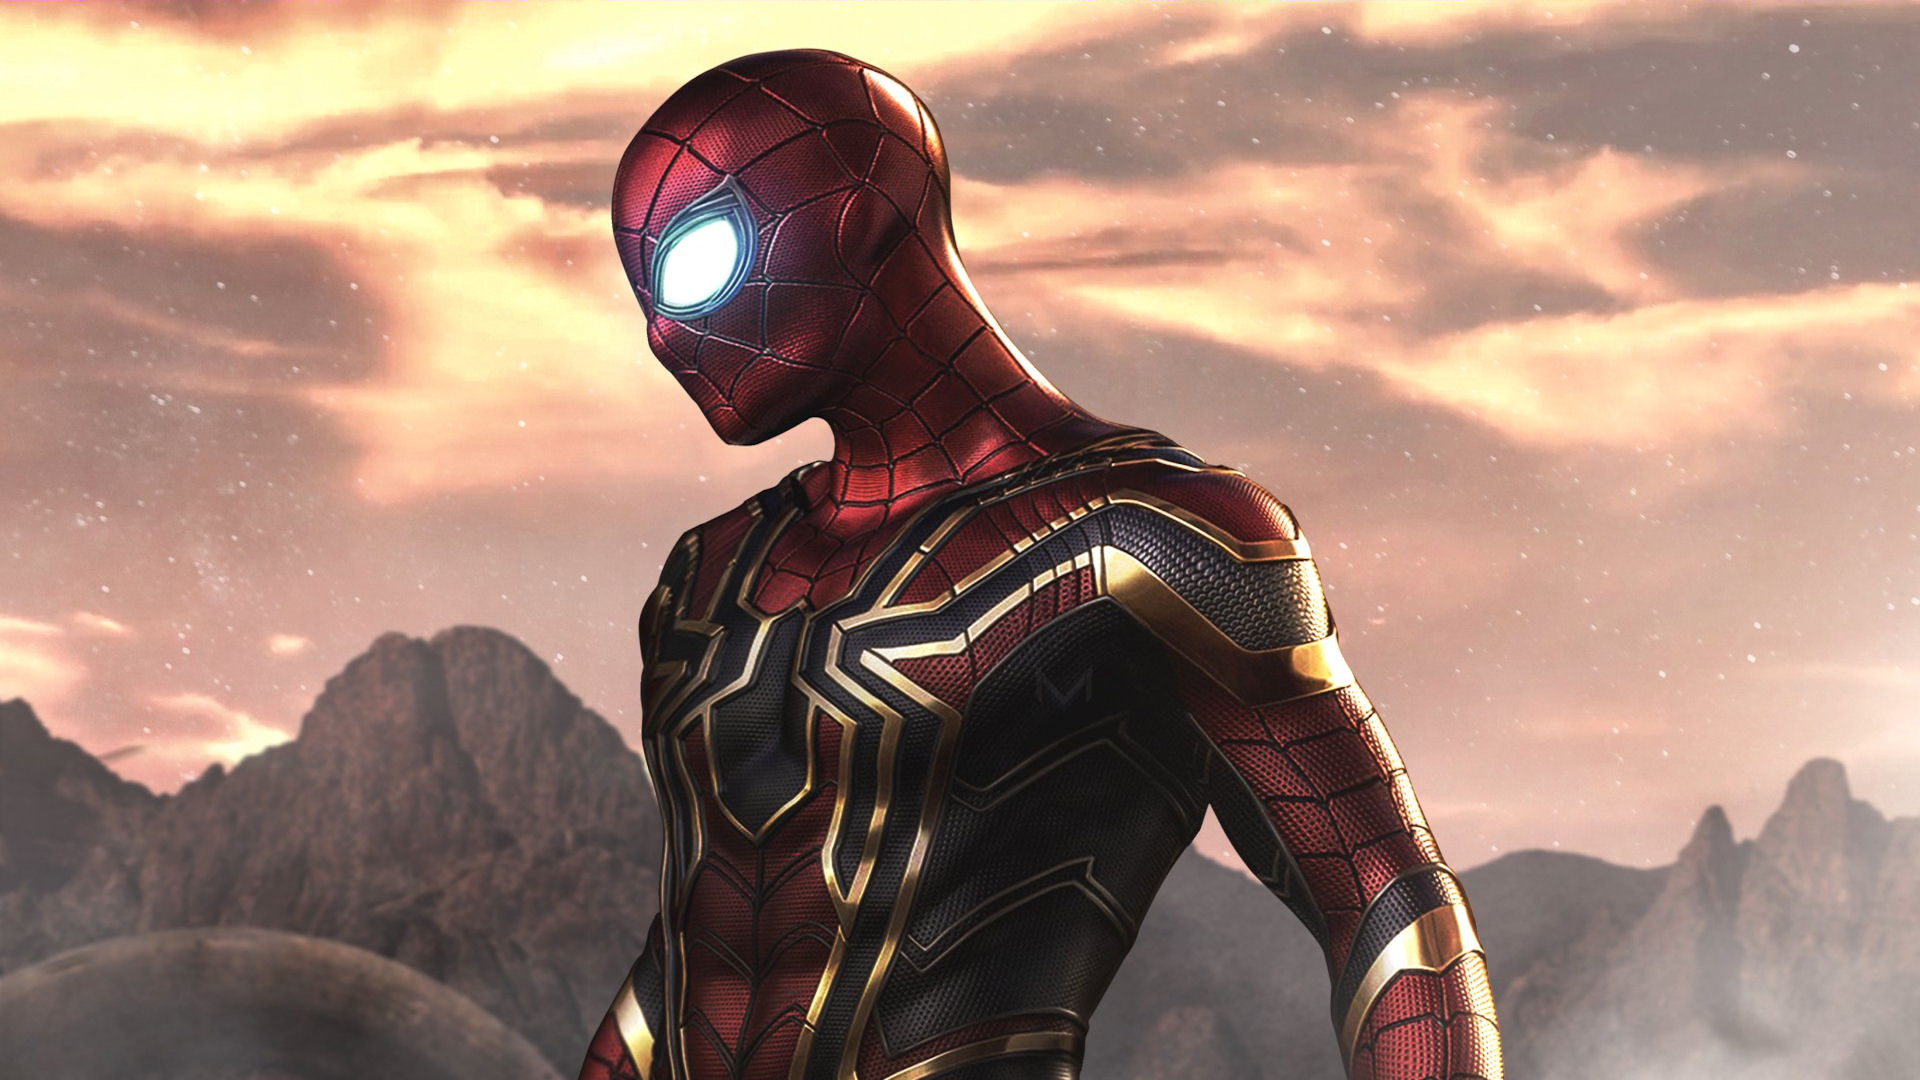 Cool Marvel Wallpapers Hd 2 Epic Heroes Select 45 X Image Gallery